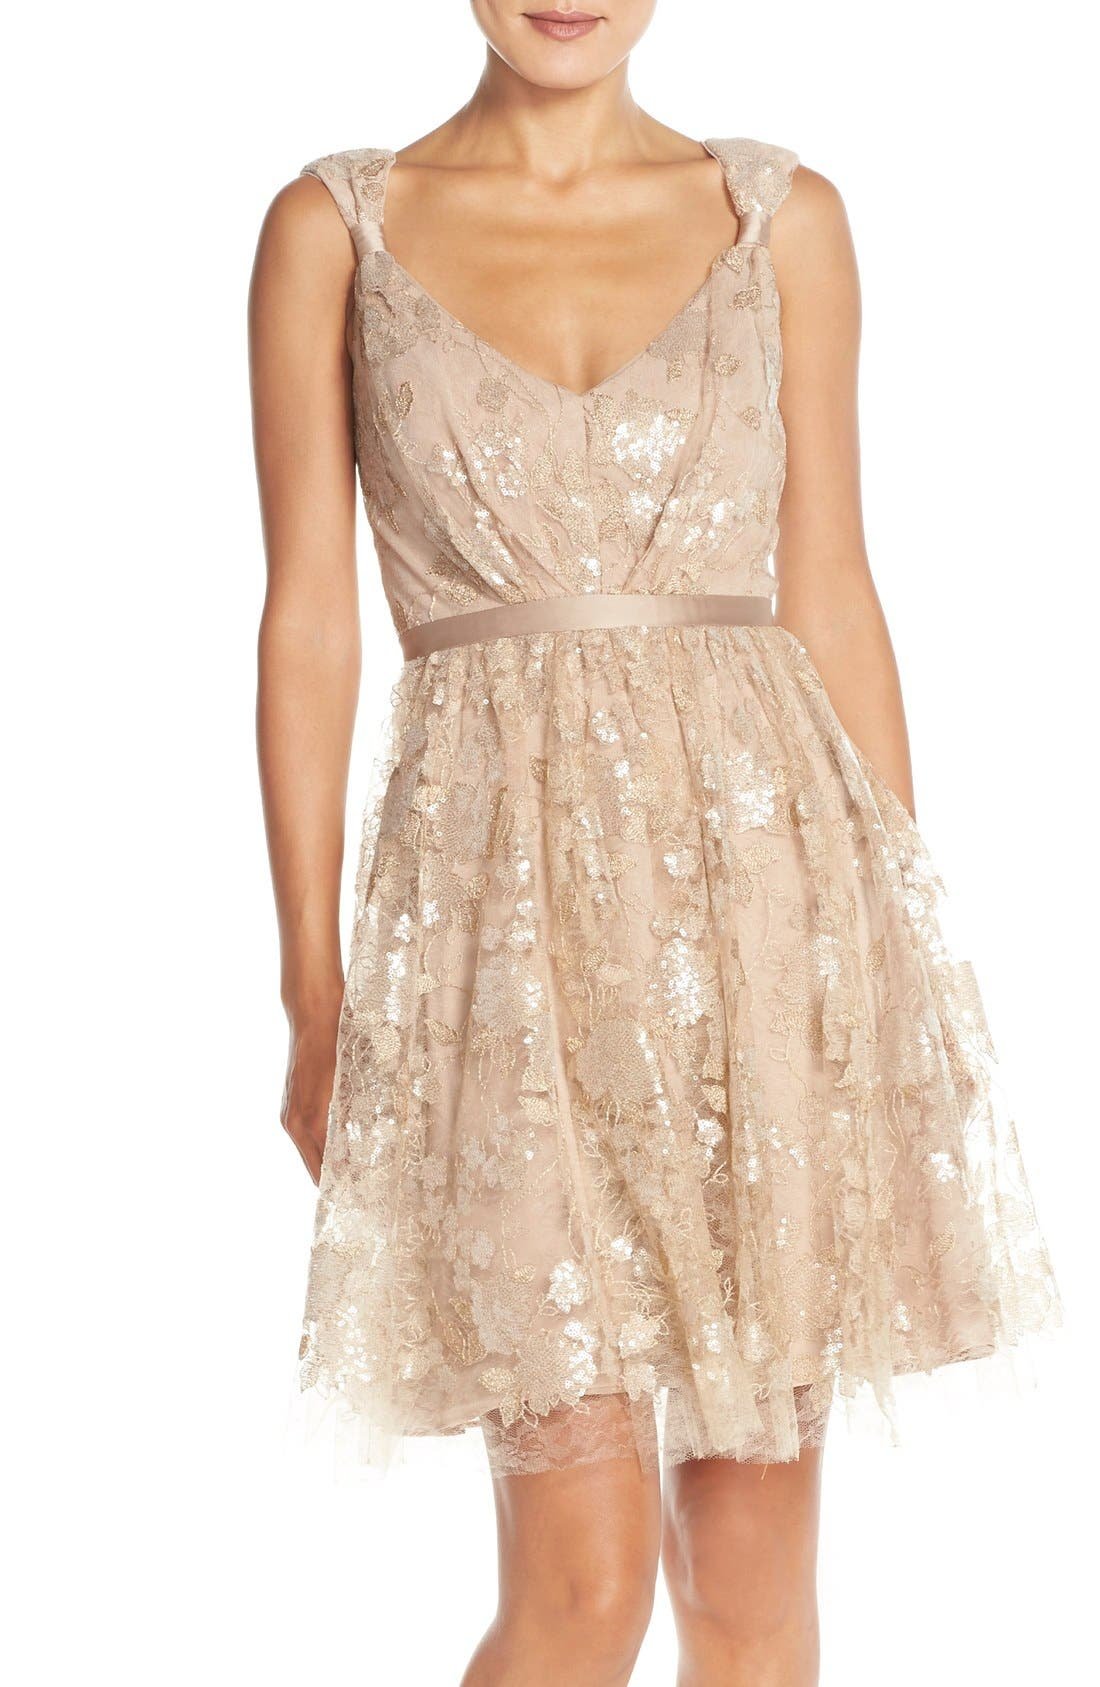 Main Image - Vera Wang Lace & Sequin Sleeveless Fit & Flare Dress